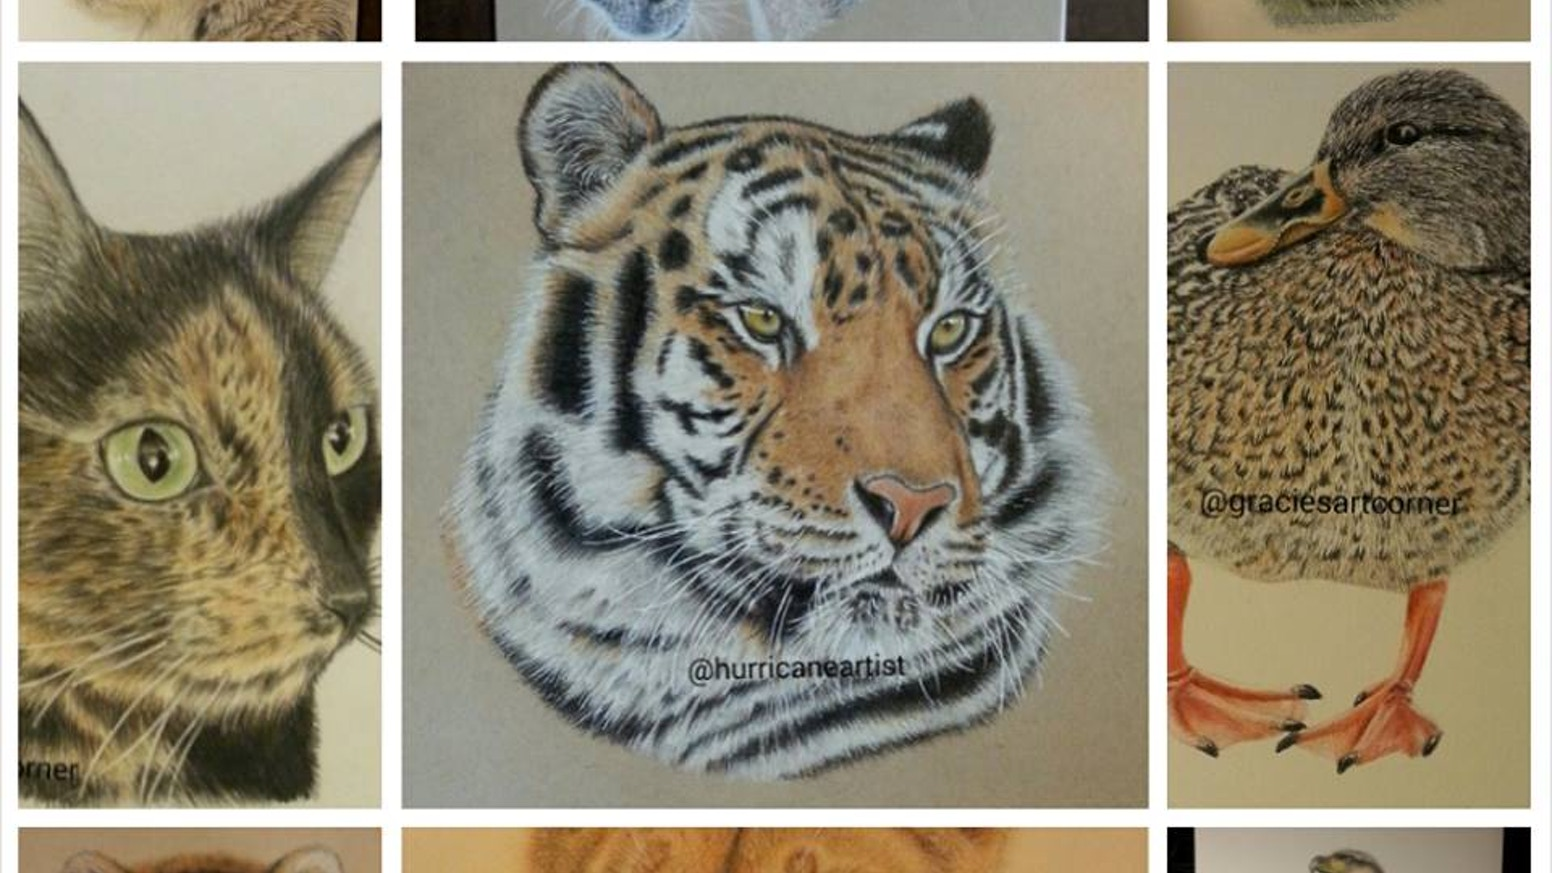 I would like to create realistic colored pencil drawings of animals and would like to have